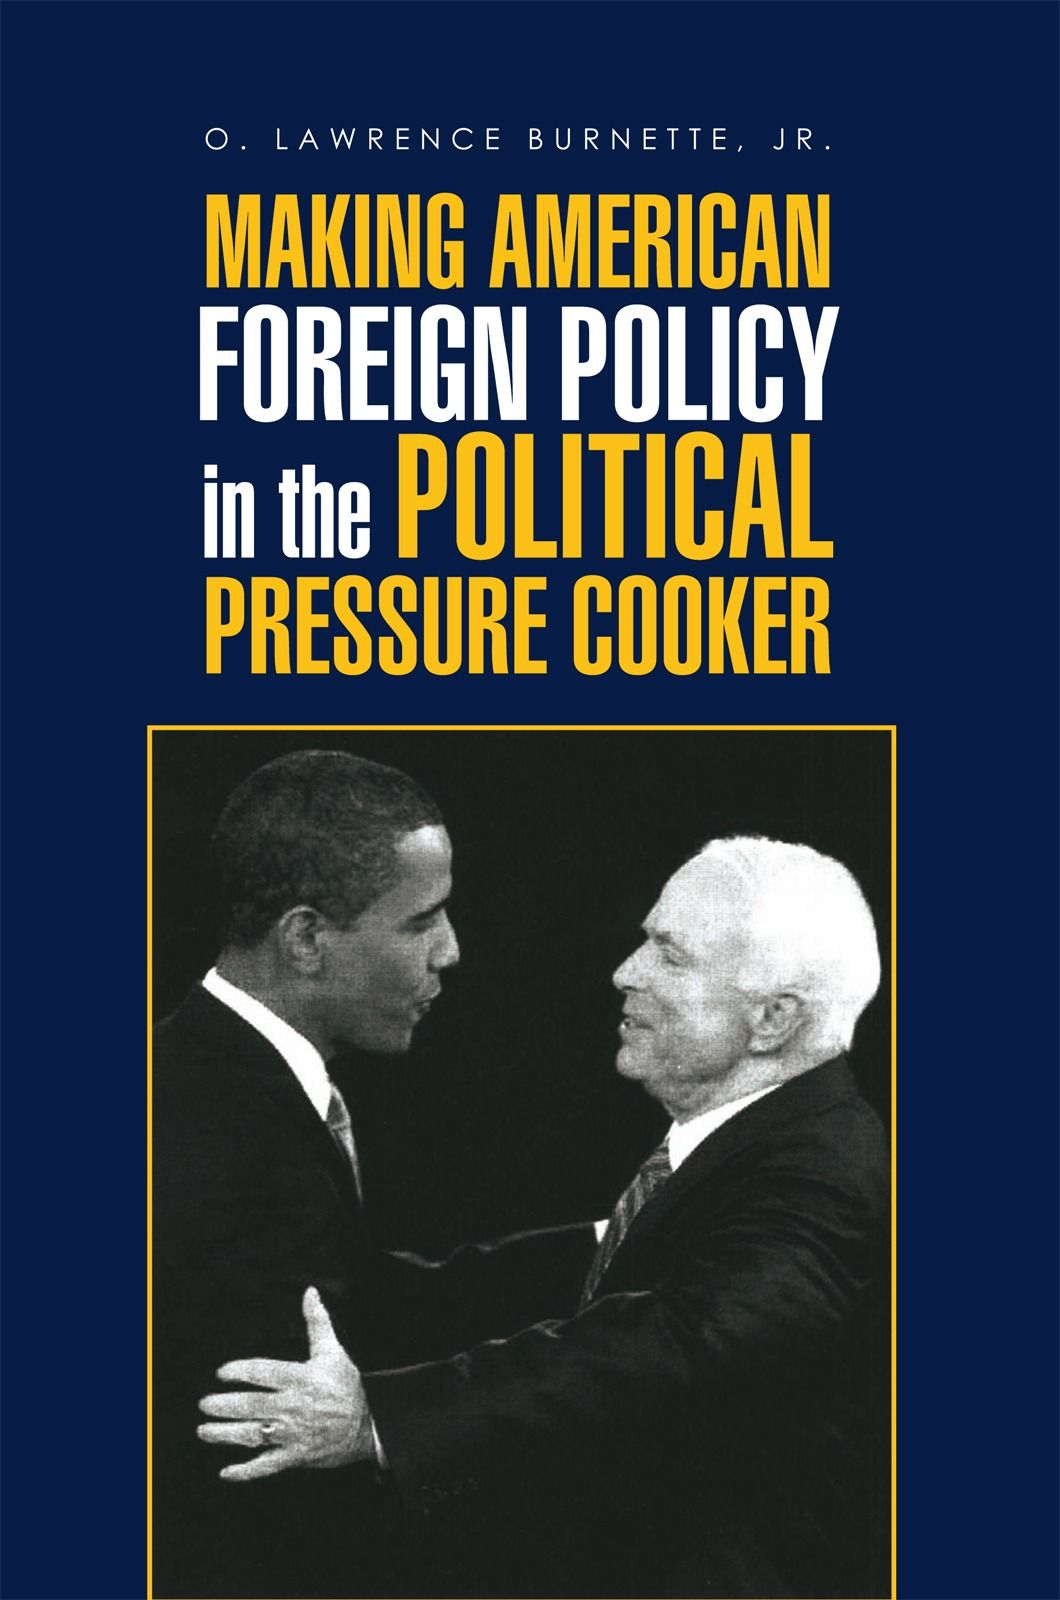 MAKING AMERICAN FOREIGN POLICY in the POLITICAL PRESSURE COOKER